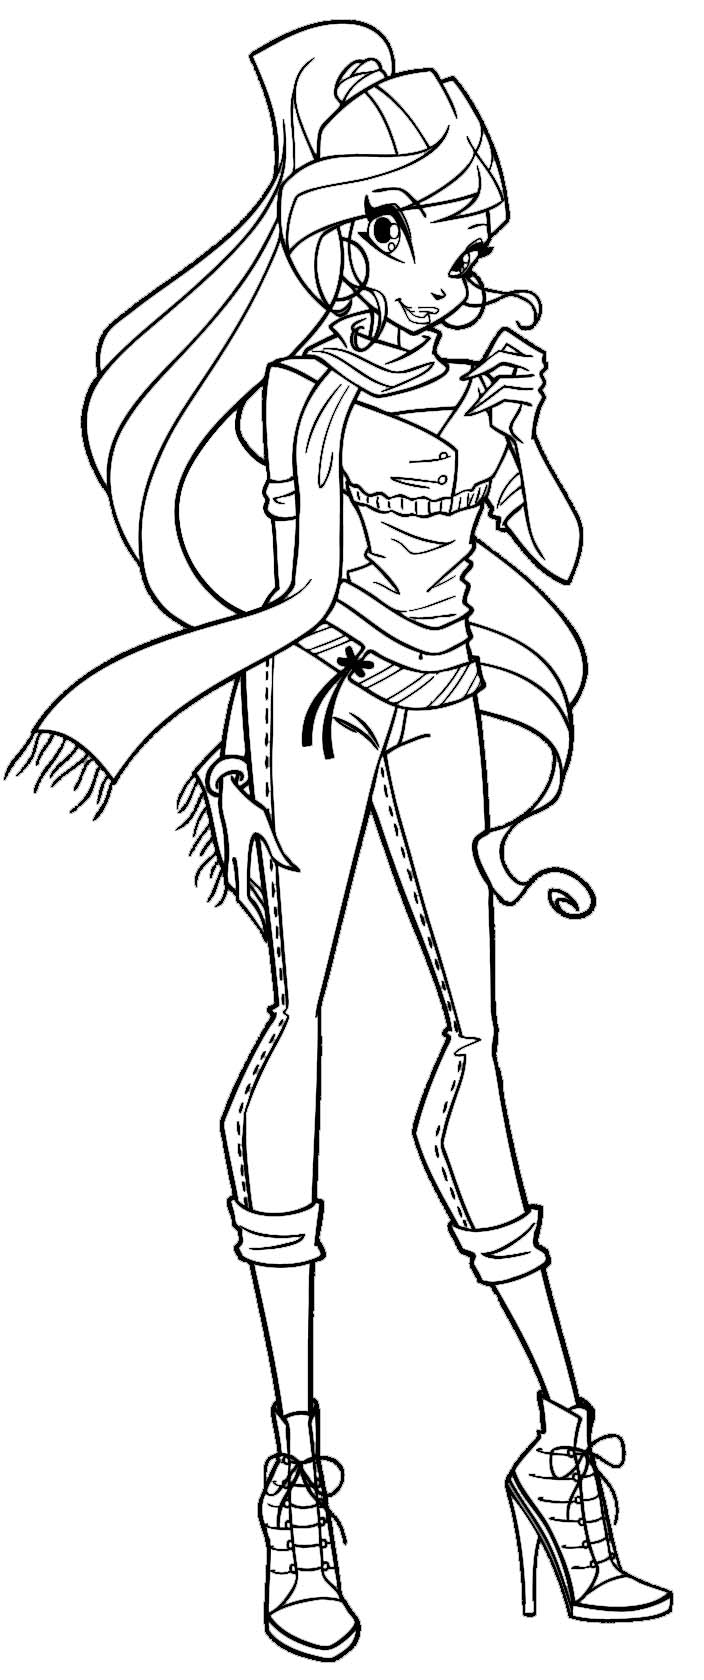 Winx bloom by elfkena on deviantart for Bloom winx coloring pages